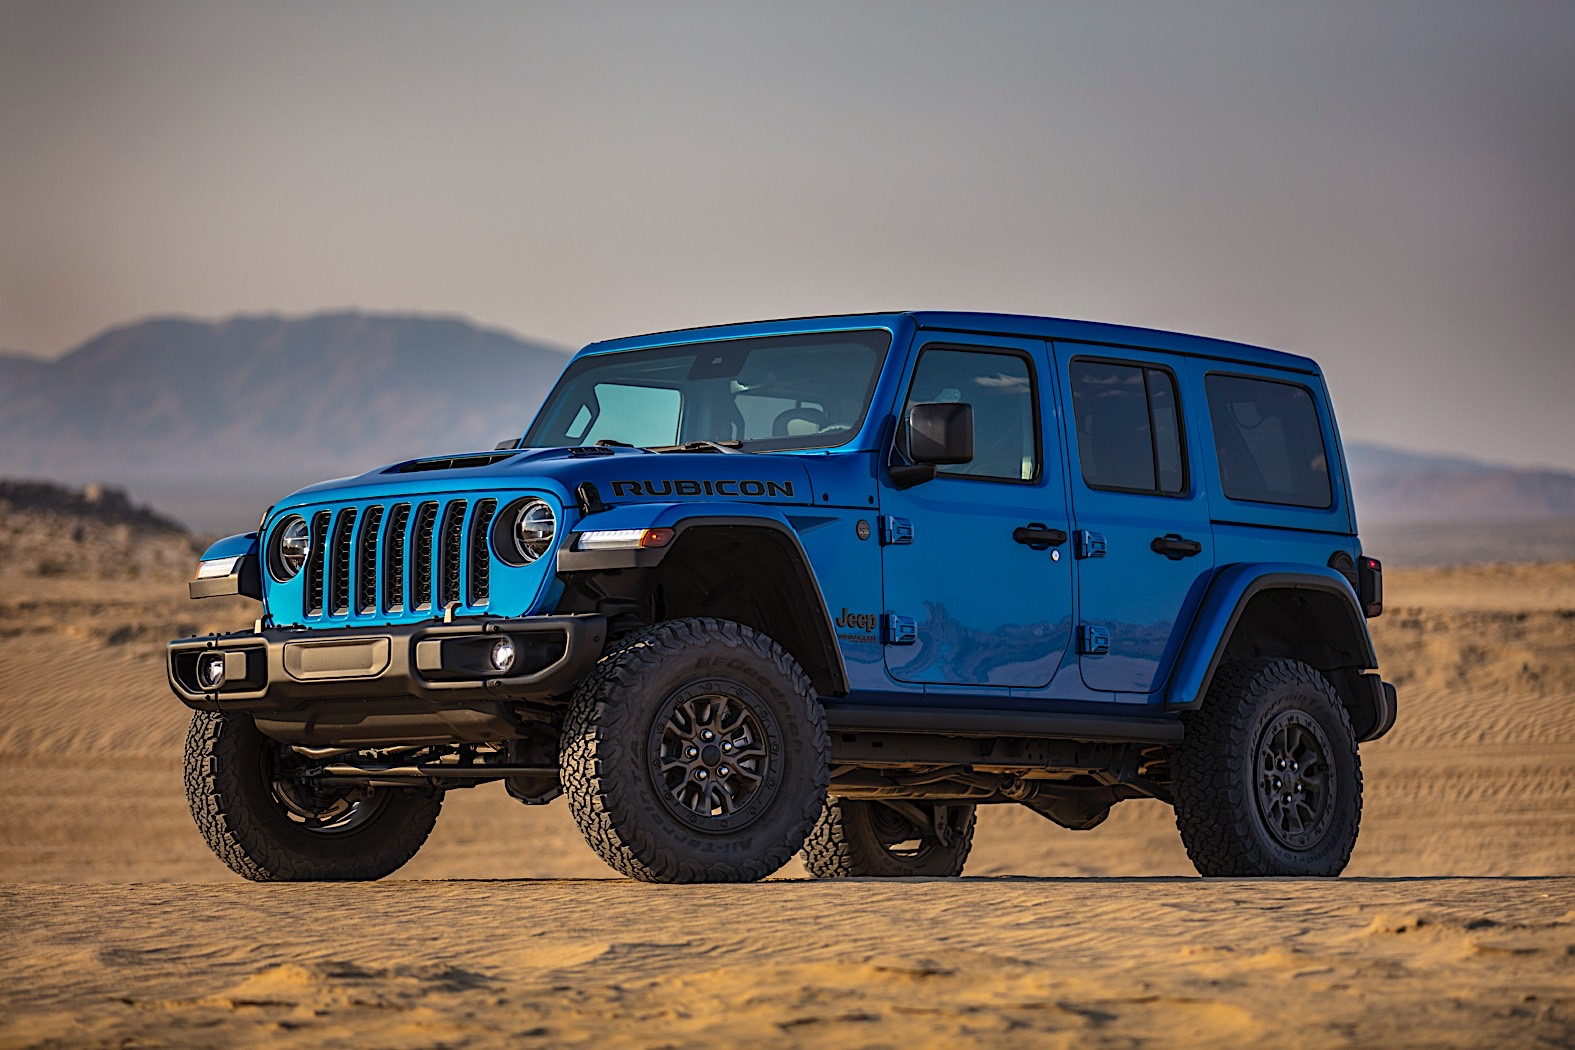 Not A Concept: Jeep Confirms Hemi V8-Powered Wrangler For Production